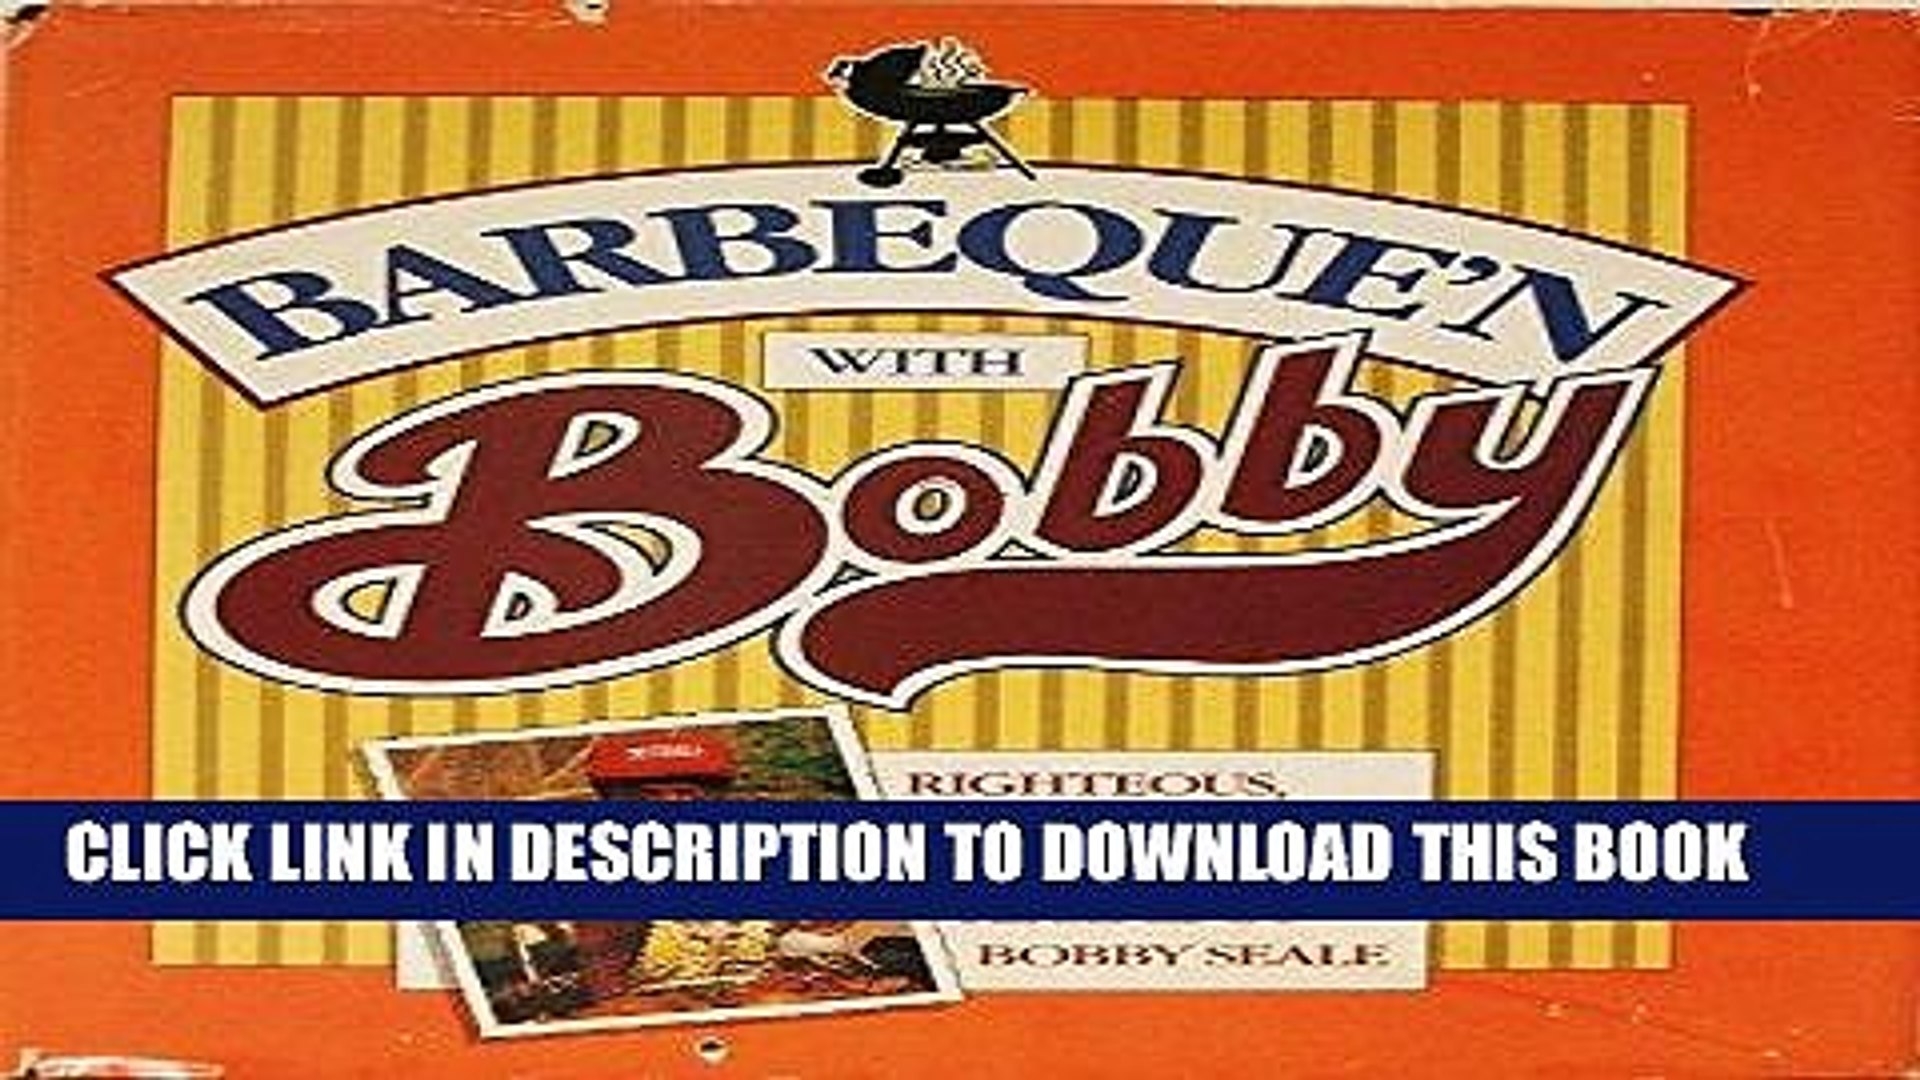 Best Seller Barbeque N With Bobby: Righteous, Down-Home Barbeque Recipes by Bobby Seale Free Read